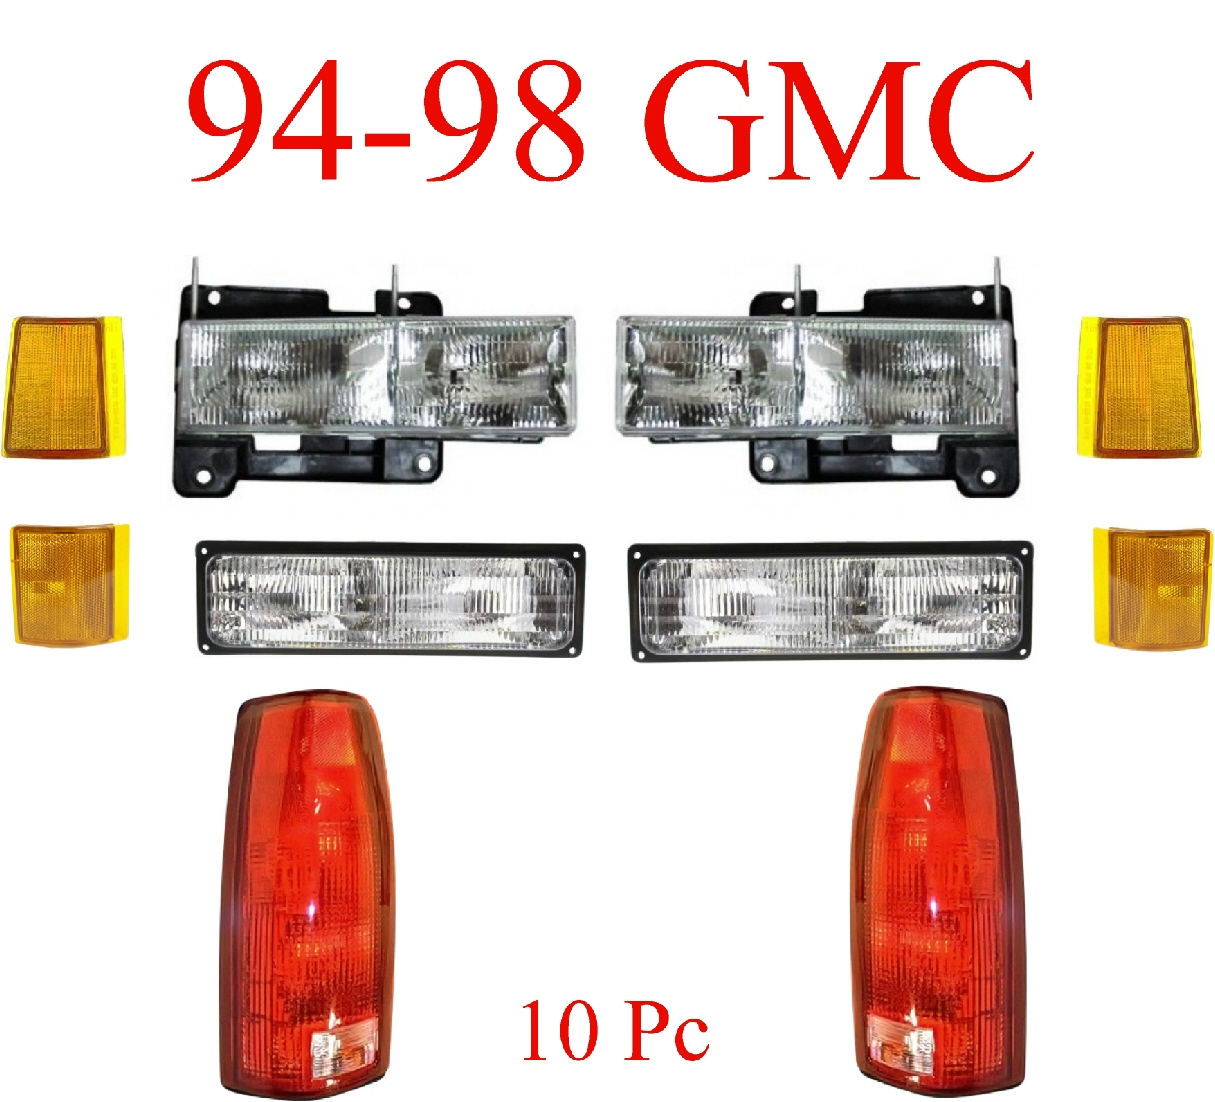 94-98 GMC 10Pc Light Kit Front & Rear